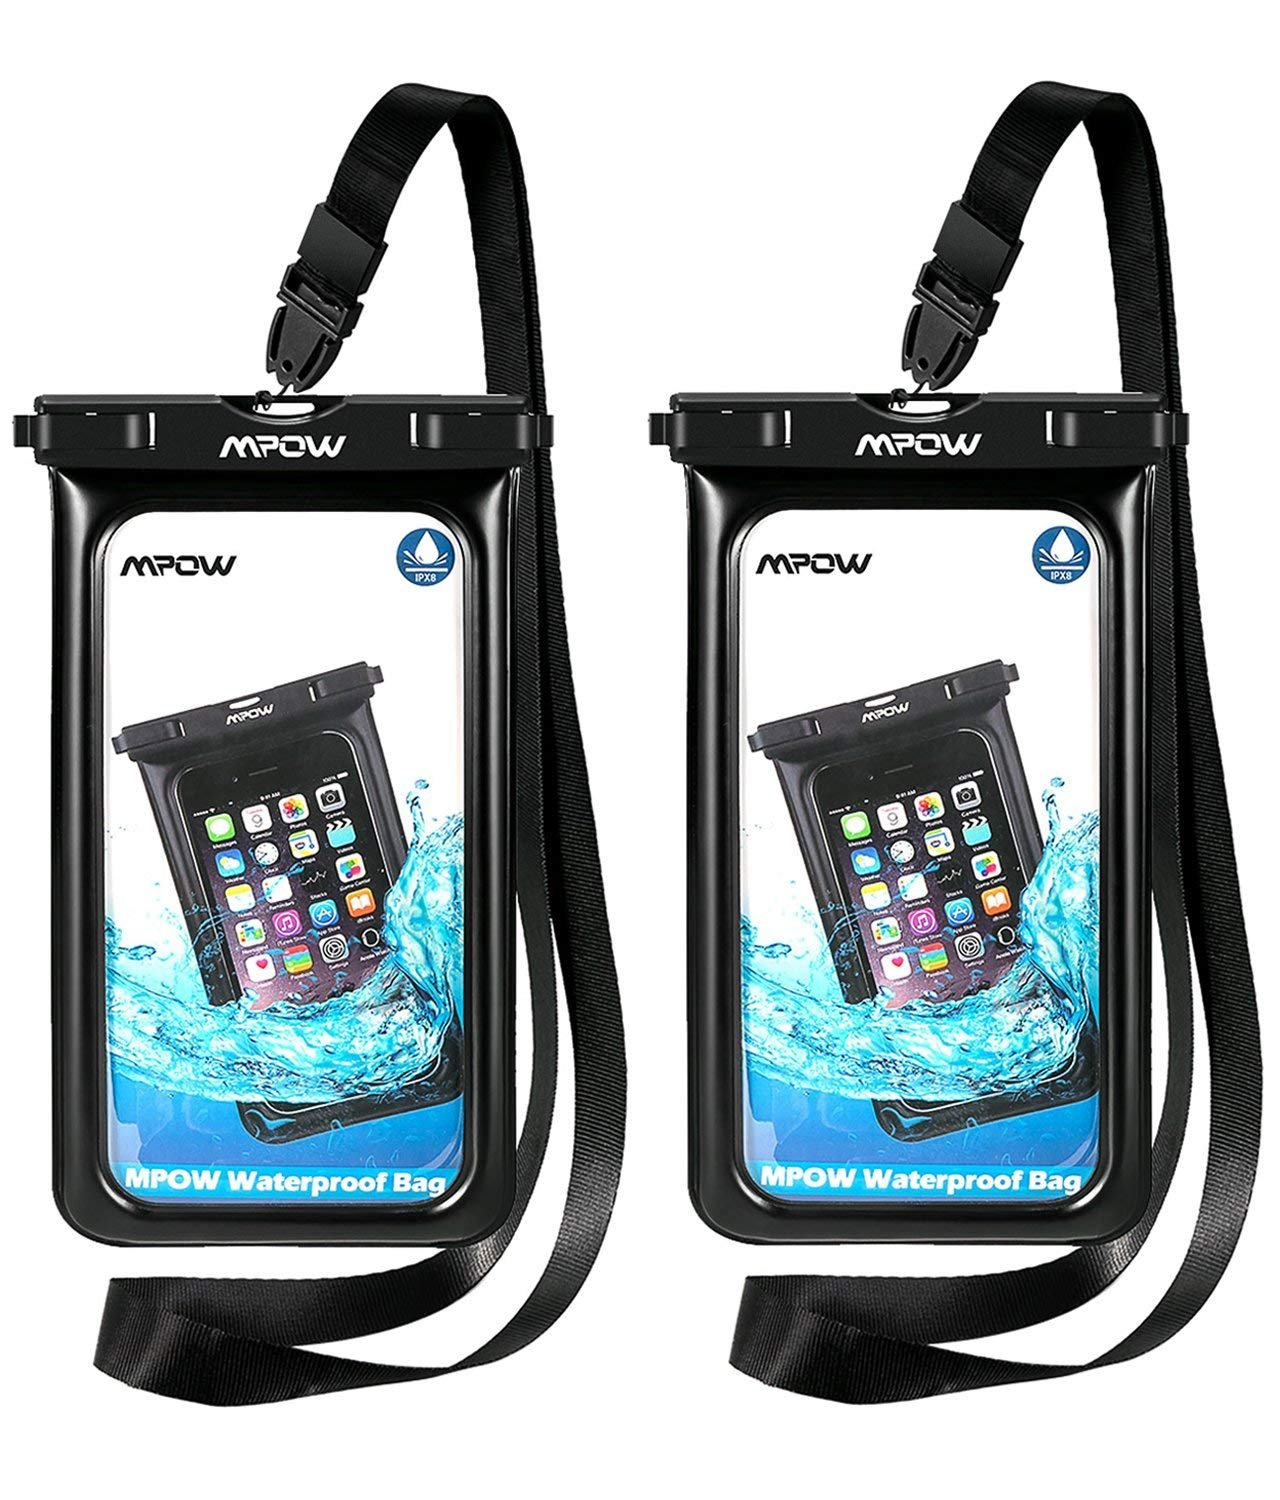 Mpow Upgraded Floating Waterproof Phone Pouch, IPX8 Waterproof Case Underwater New Type TPU Dry Bag for iPhone Xs Max/Xr/X/8/8plus/7/7plus/6s/6/6s Plus Galaxy s10/s9/s8 Google Pixel HTC12(Black) by Mpow